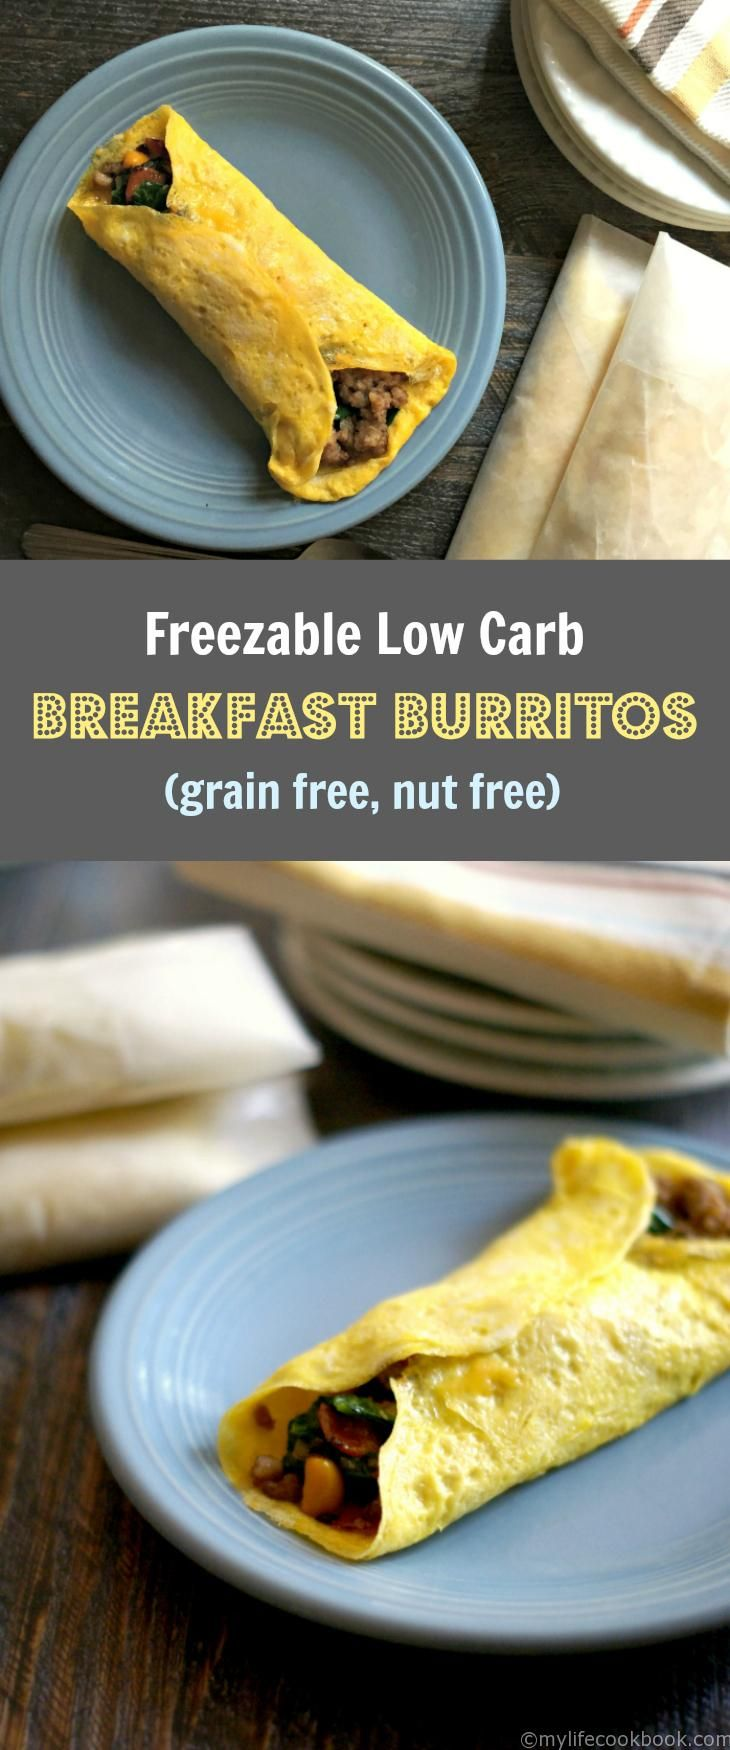 You can make these freezable low carb breakfast burritos in minutes. A delicious low carb breakfast to go.